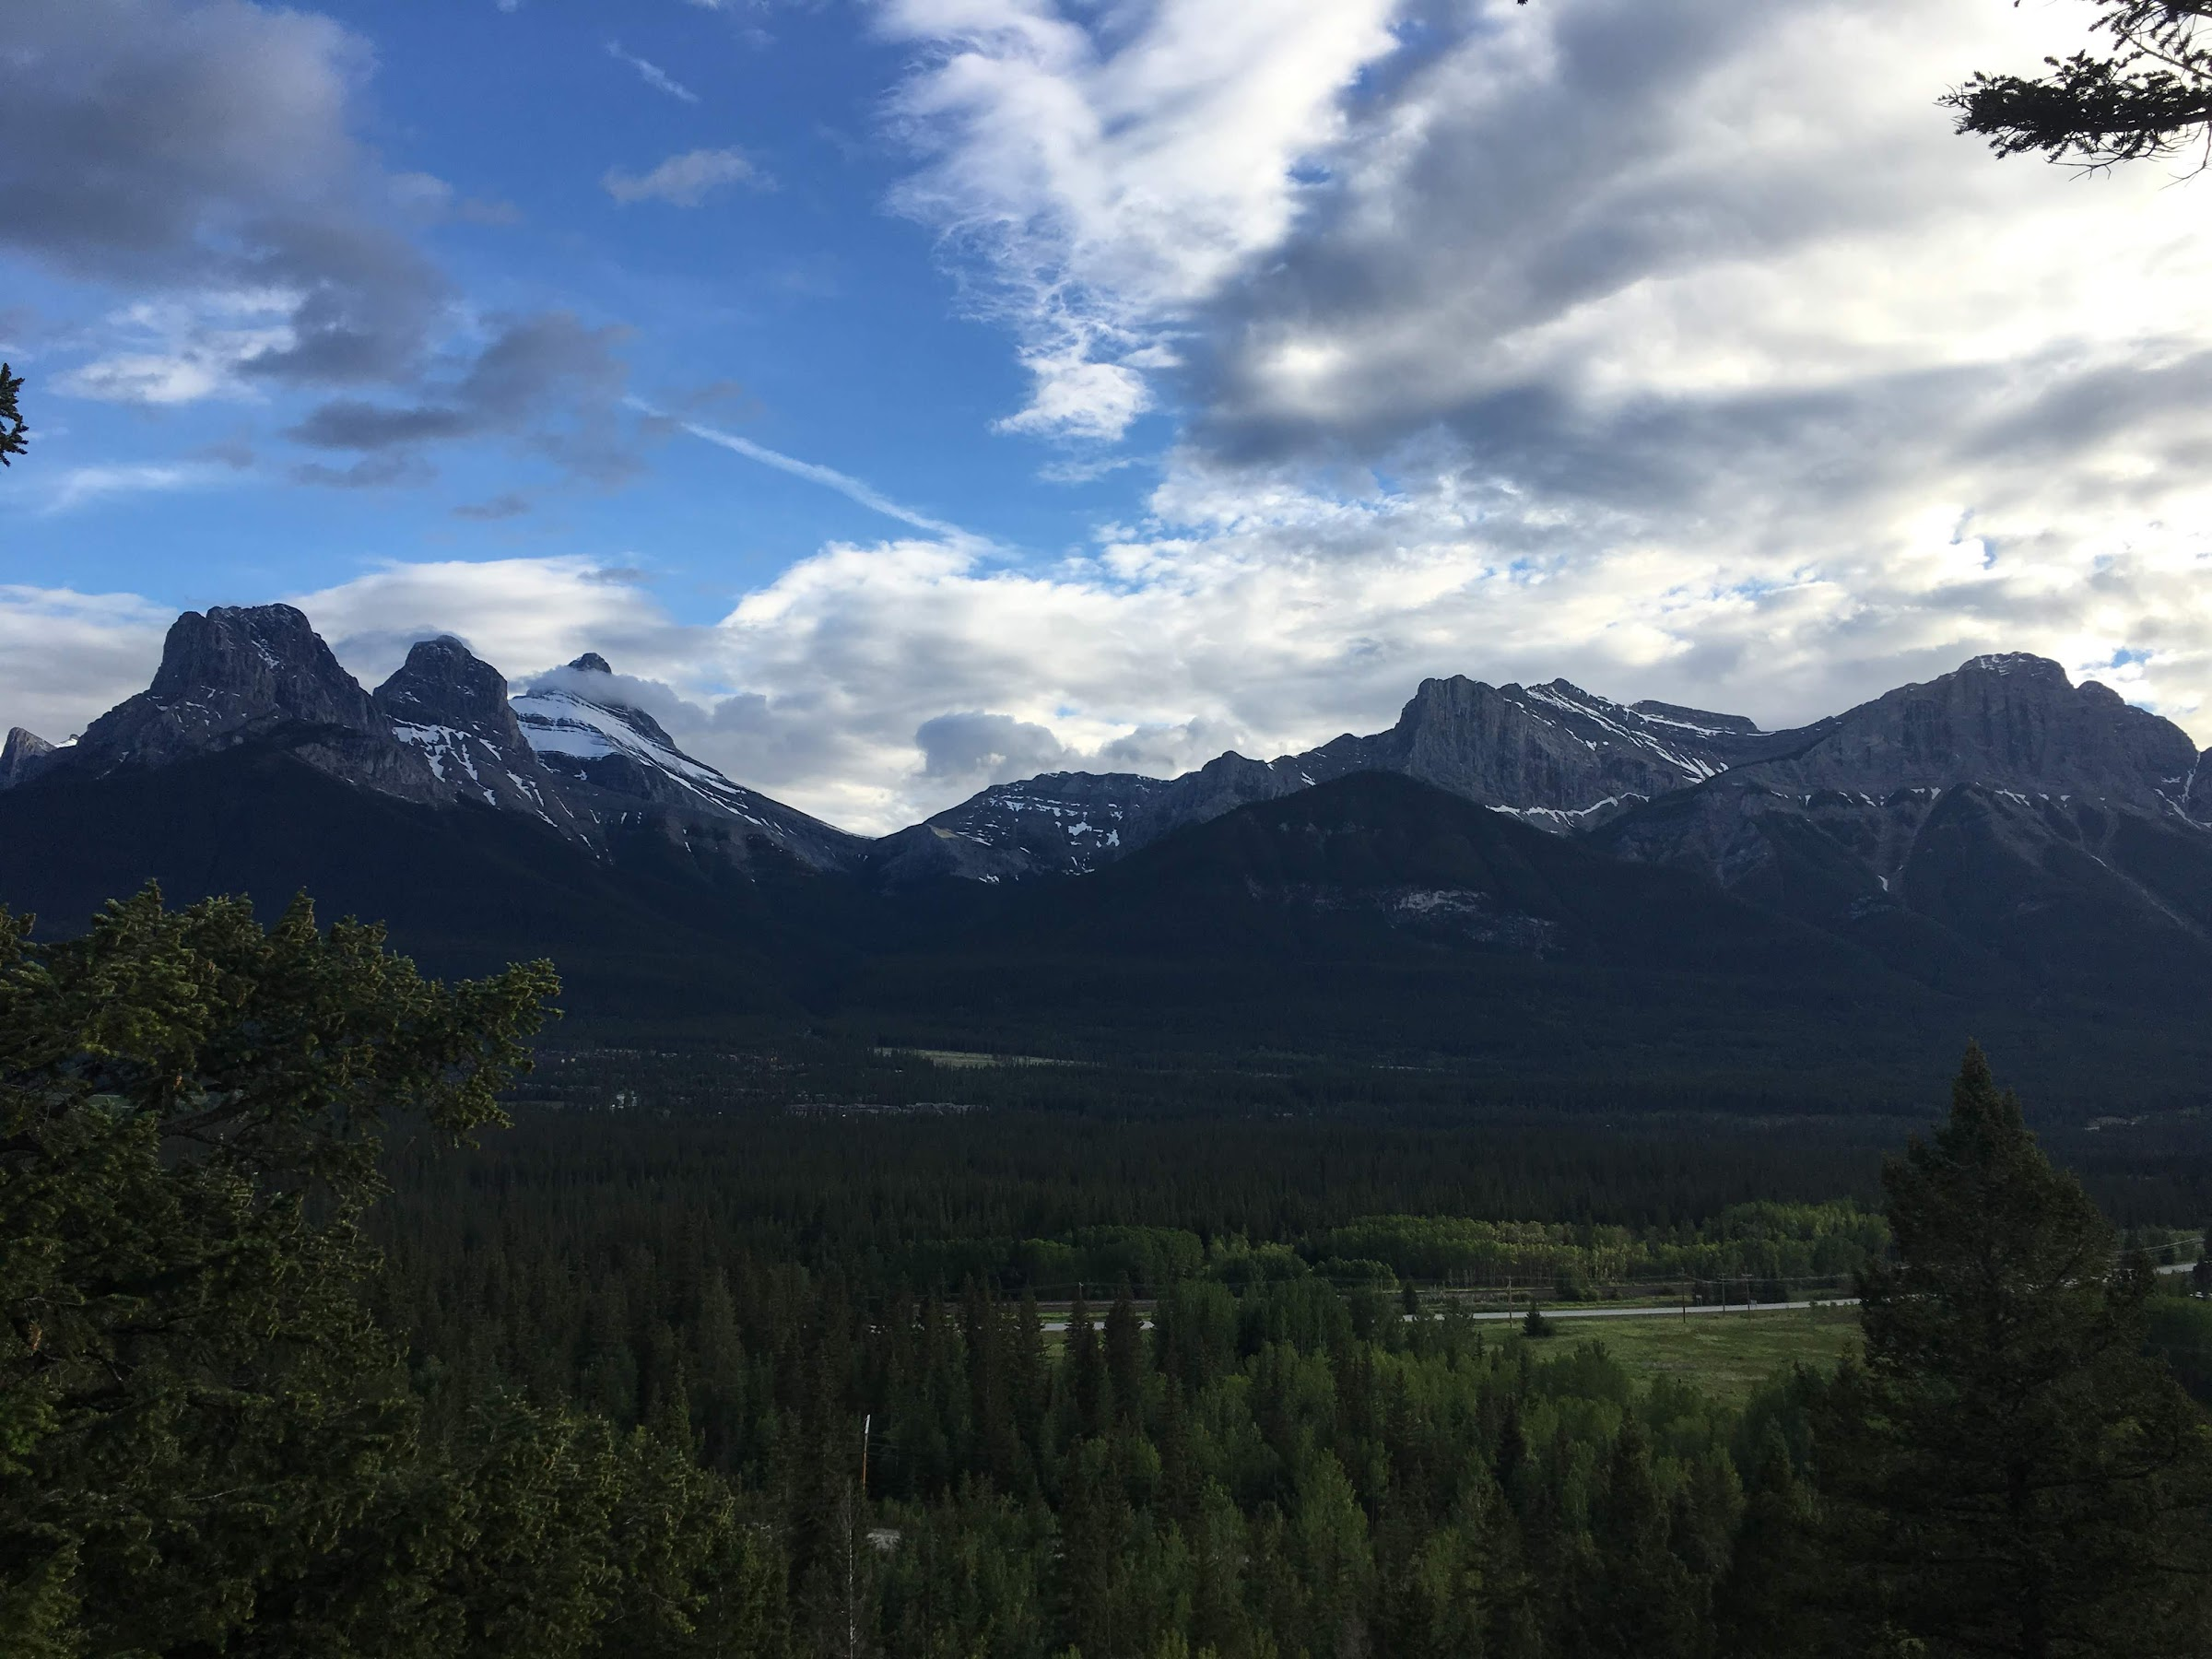 Have 3 days in Banff? Follow this Banff 3 Day Summer Itinerary to see all the highlights in Banff, Canada #banff #alberta #canada #visitBanff #Banffitinerary